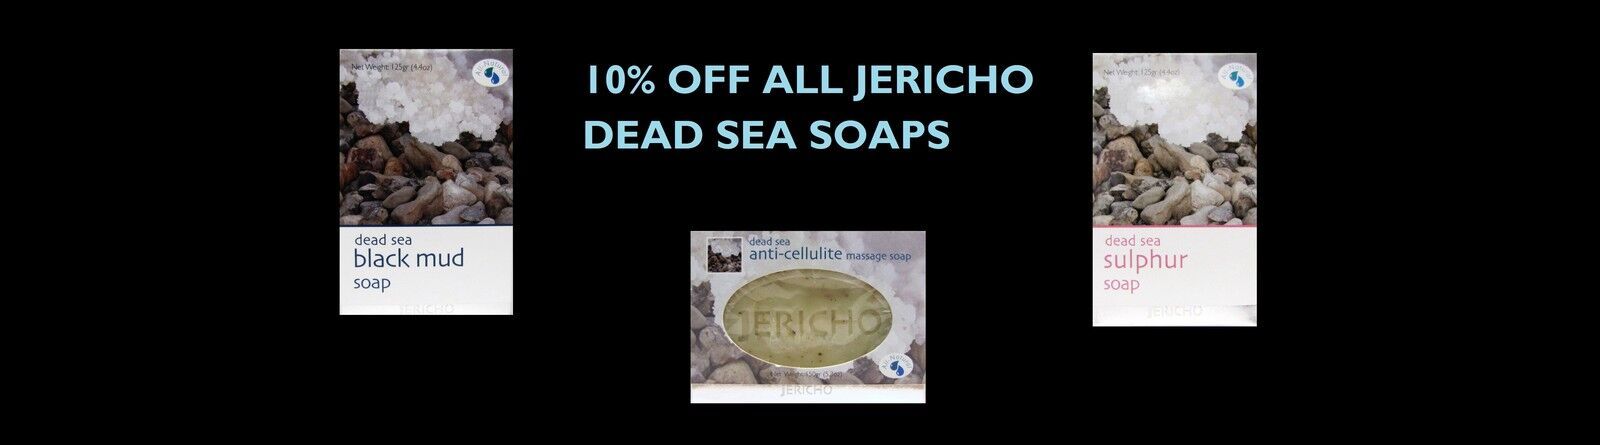 Jericho Dead Sea Products